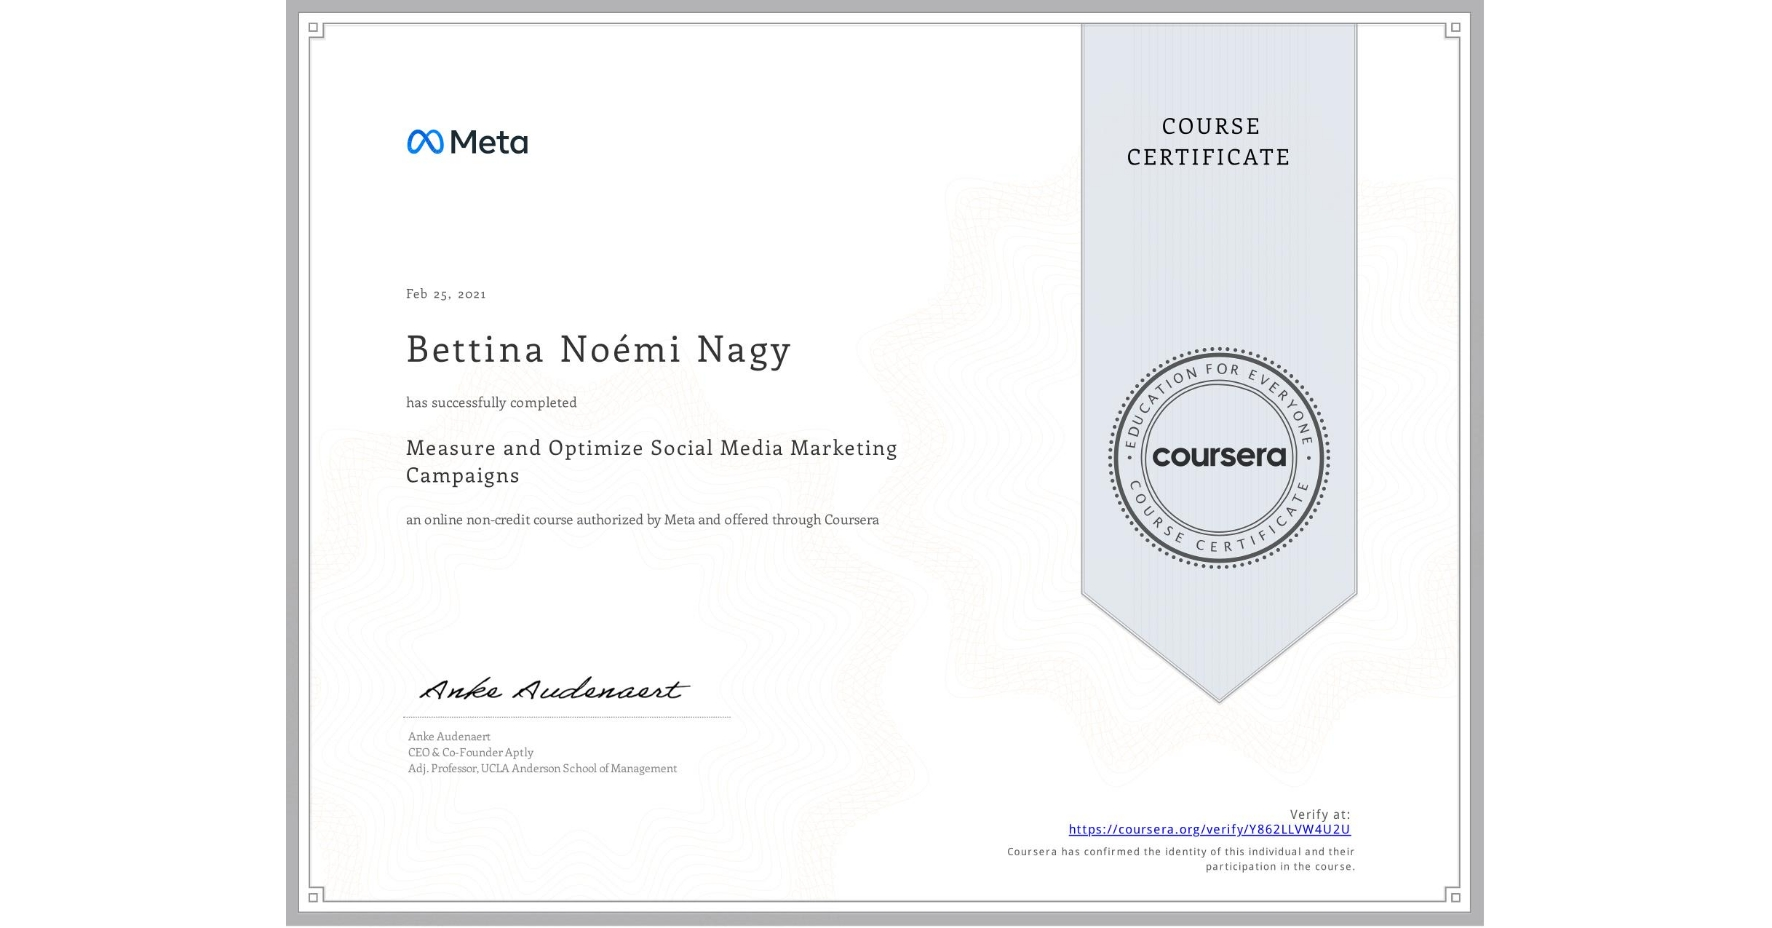 View certificate for Bettina Noémi Nagy, Measure and Optimize Social Media Marketing Campaigns, an online non-credit course authorized by Facebook and offered through Coursera